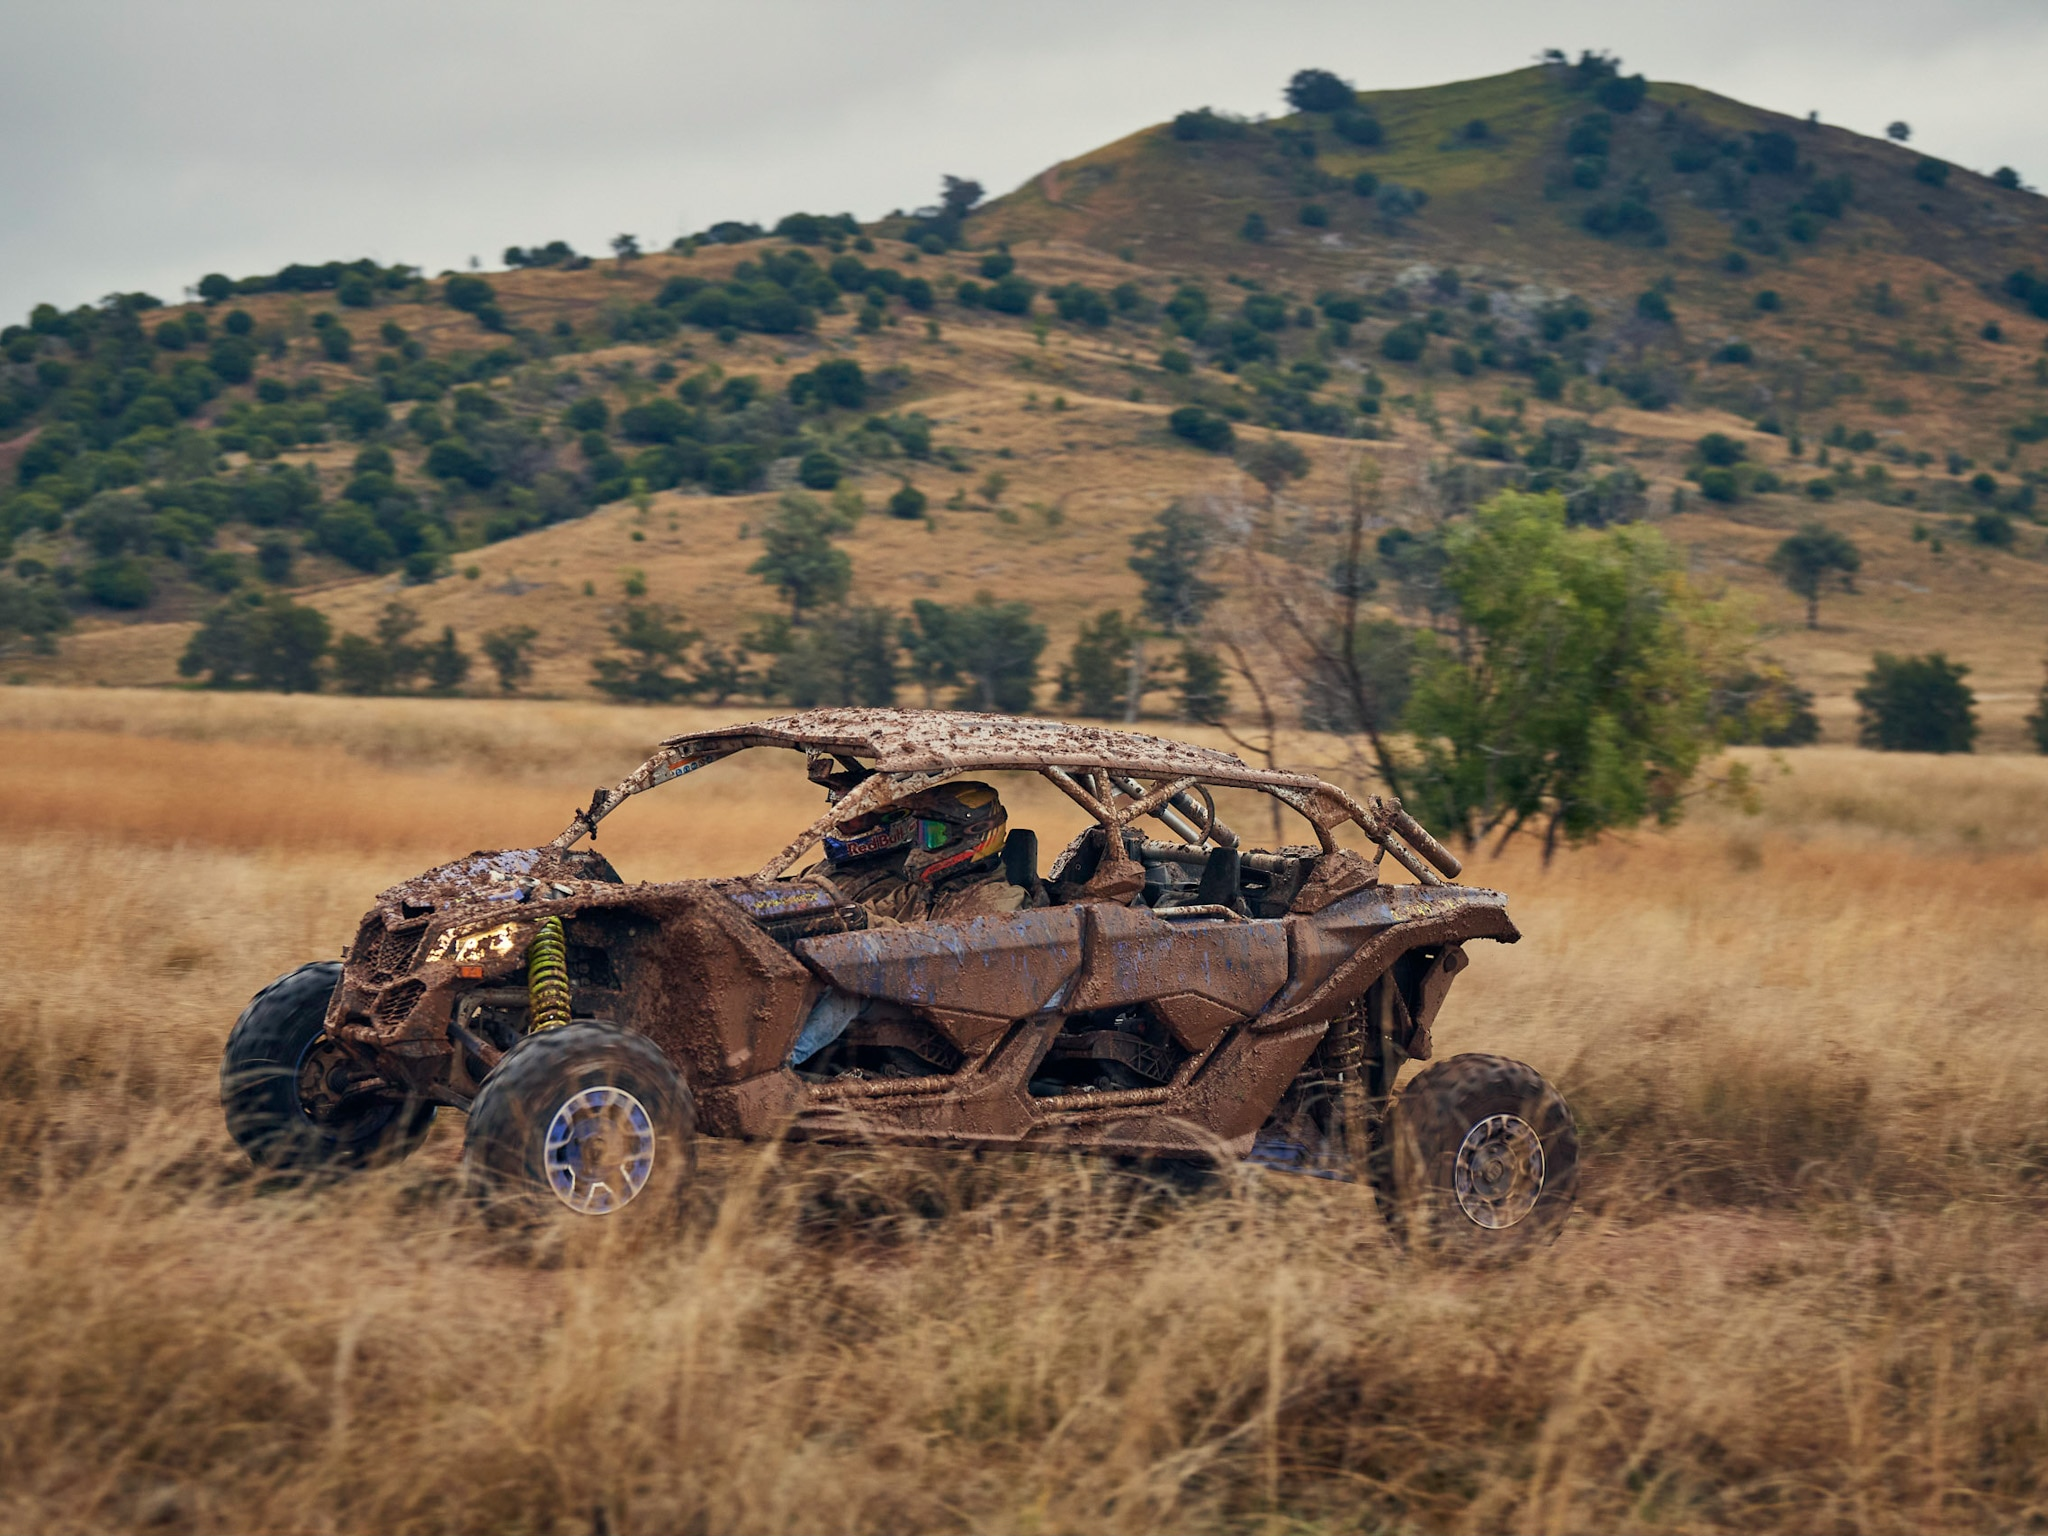 Can-Am Maverick X3 Riding Through the Australian Bush